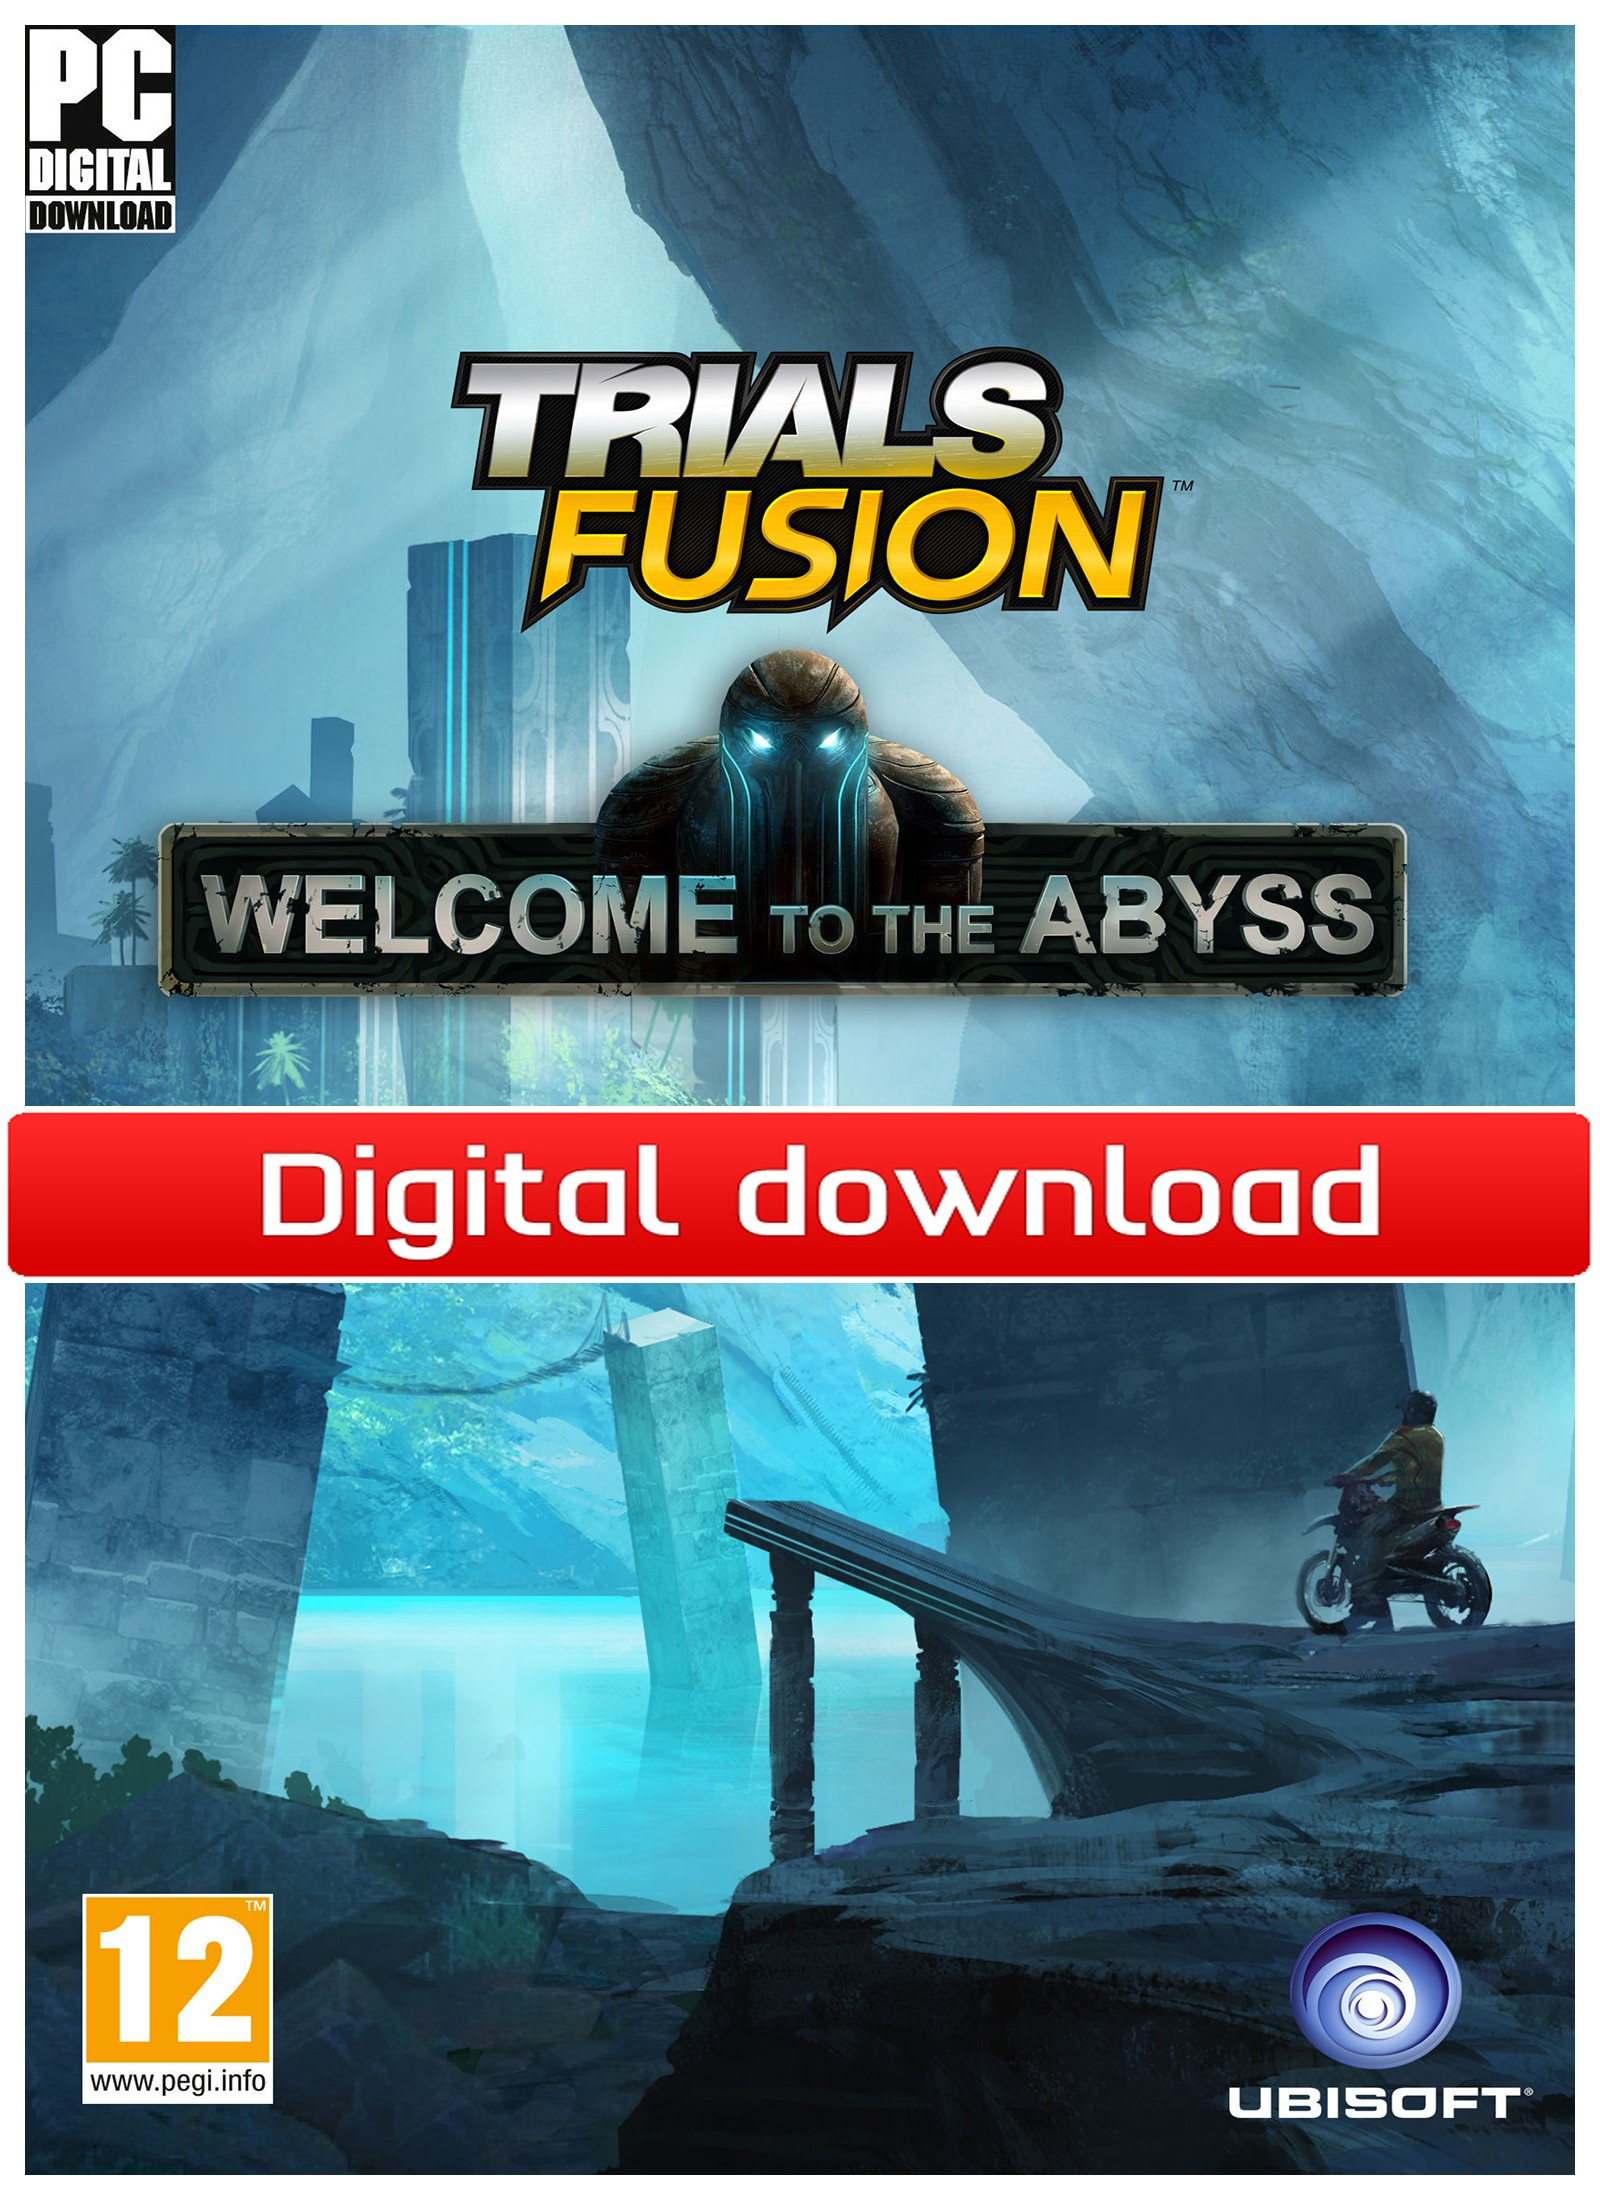 36341 : Trials Fusion - Welcome to the Abyss (PC nedlastning)